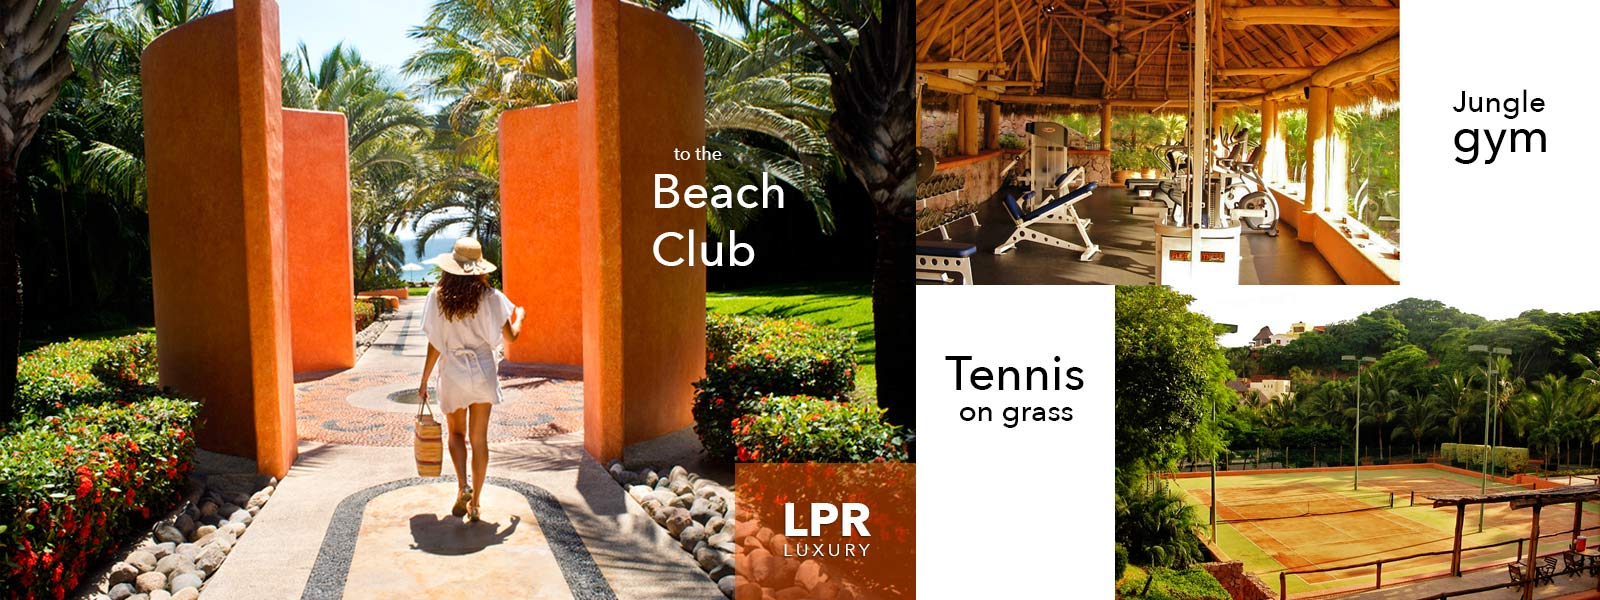 Real del Mar - Punta de Mita Luxury Real Estate and Vacation Rentals - Mexico